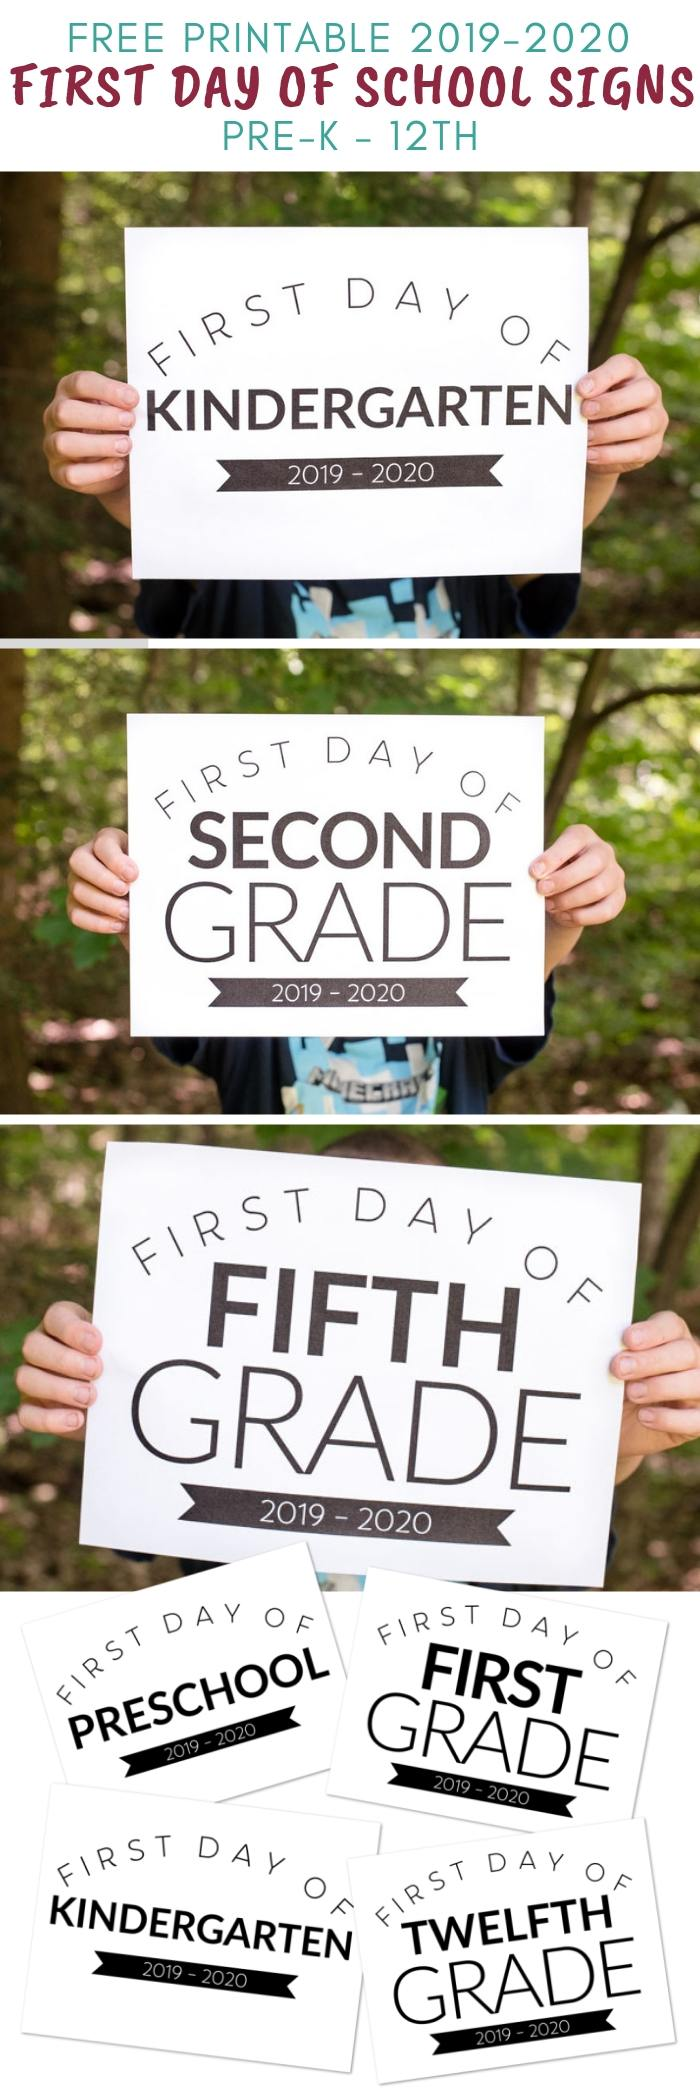 first day of school signs 2019 2020 printable